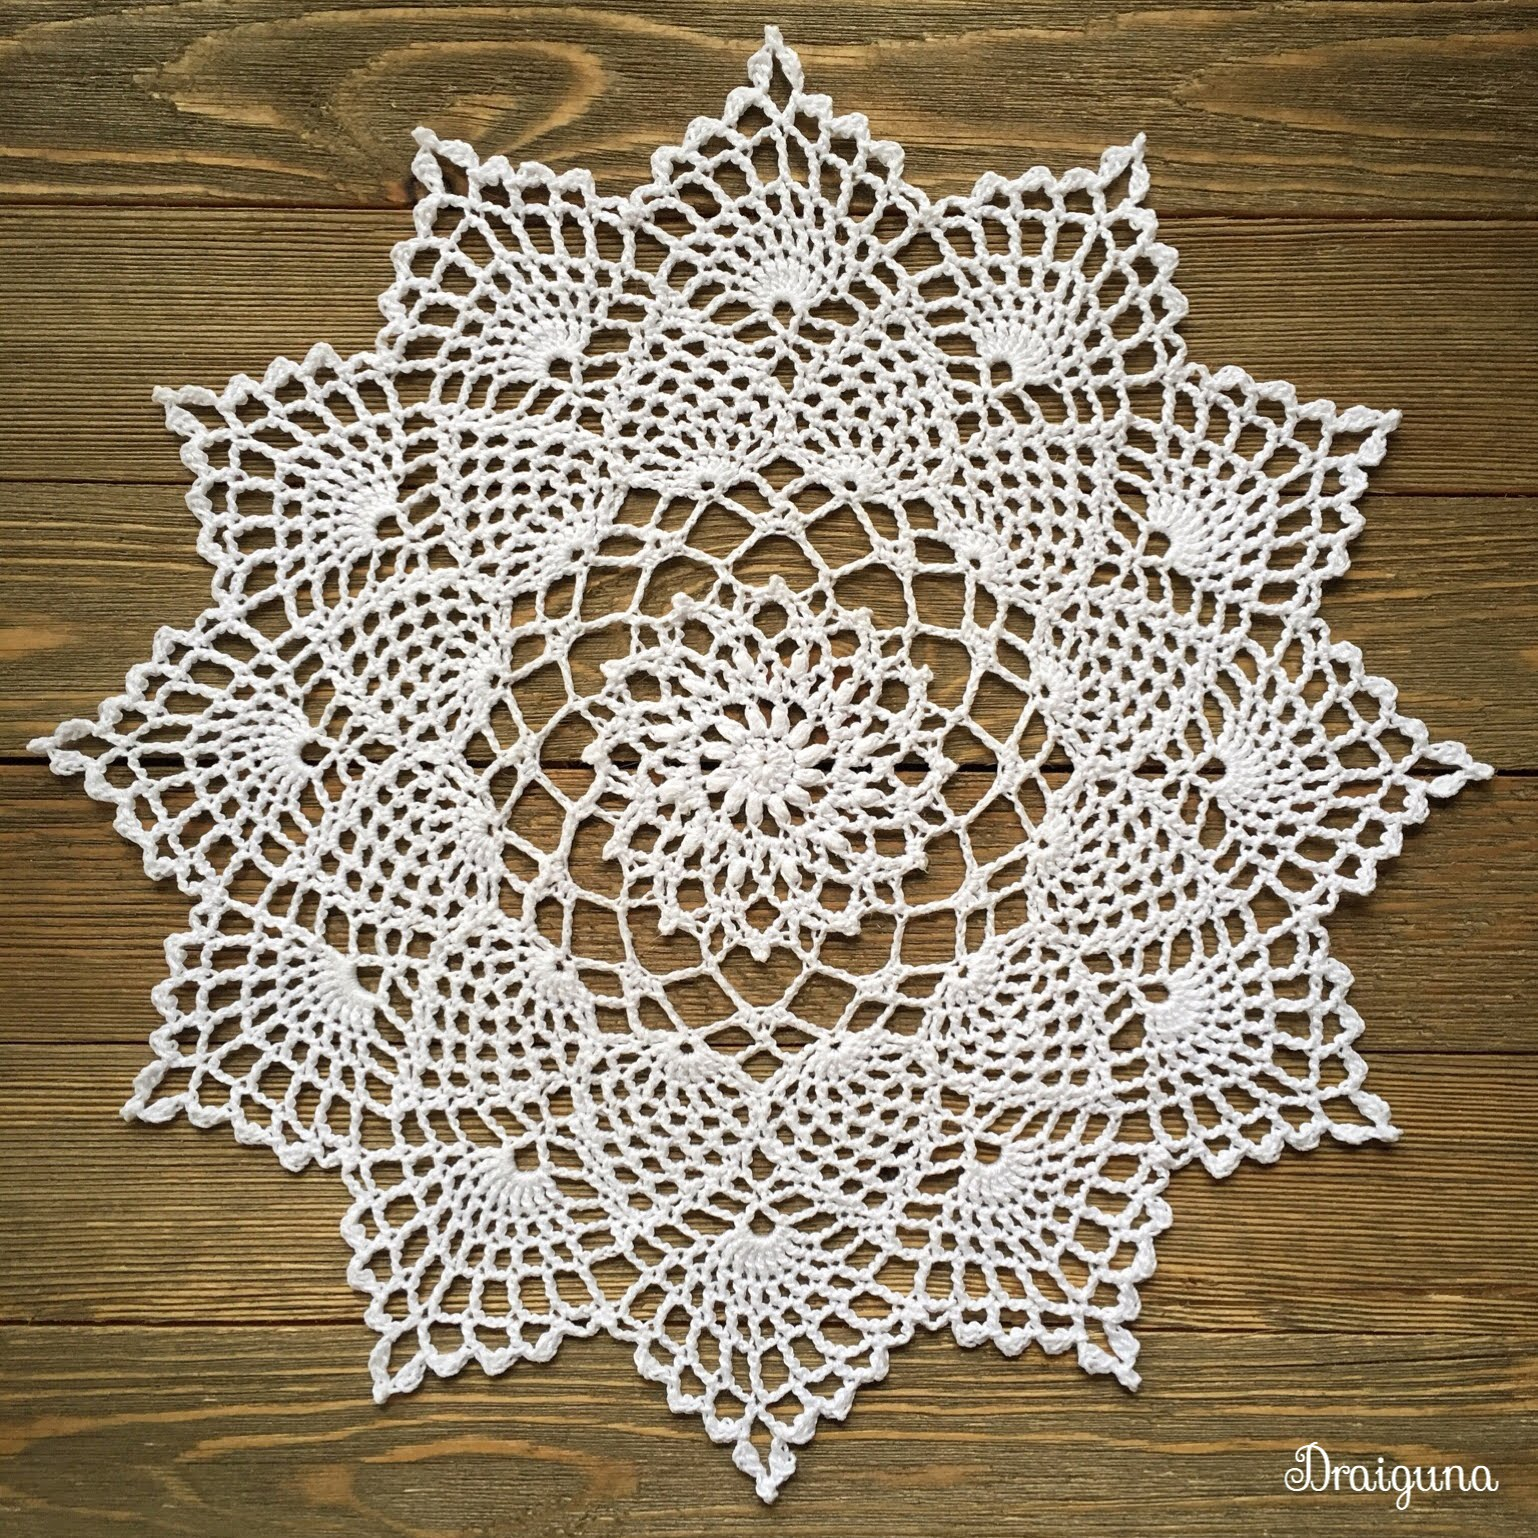 Free Crochet Pattern For Moonpetals Doily ⋆ Crochet Kingdom